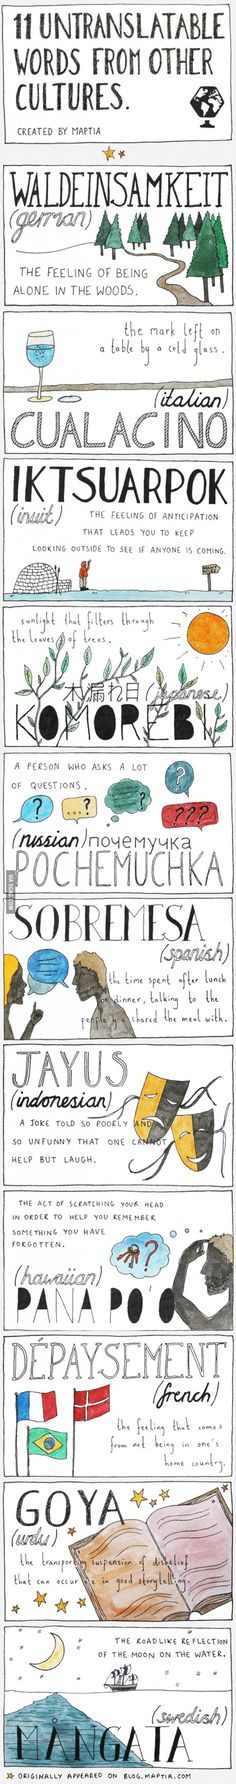 Untranslatable Words from other languages + cultures